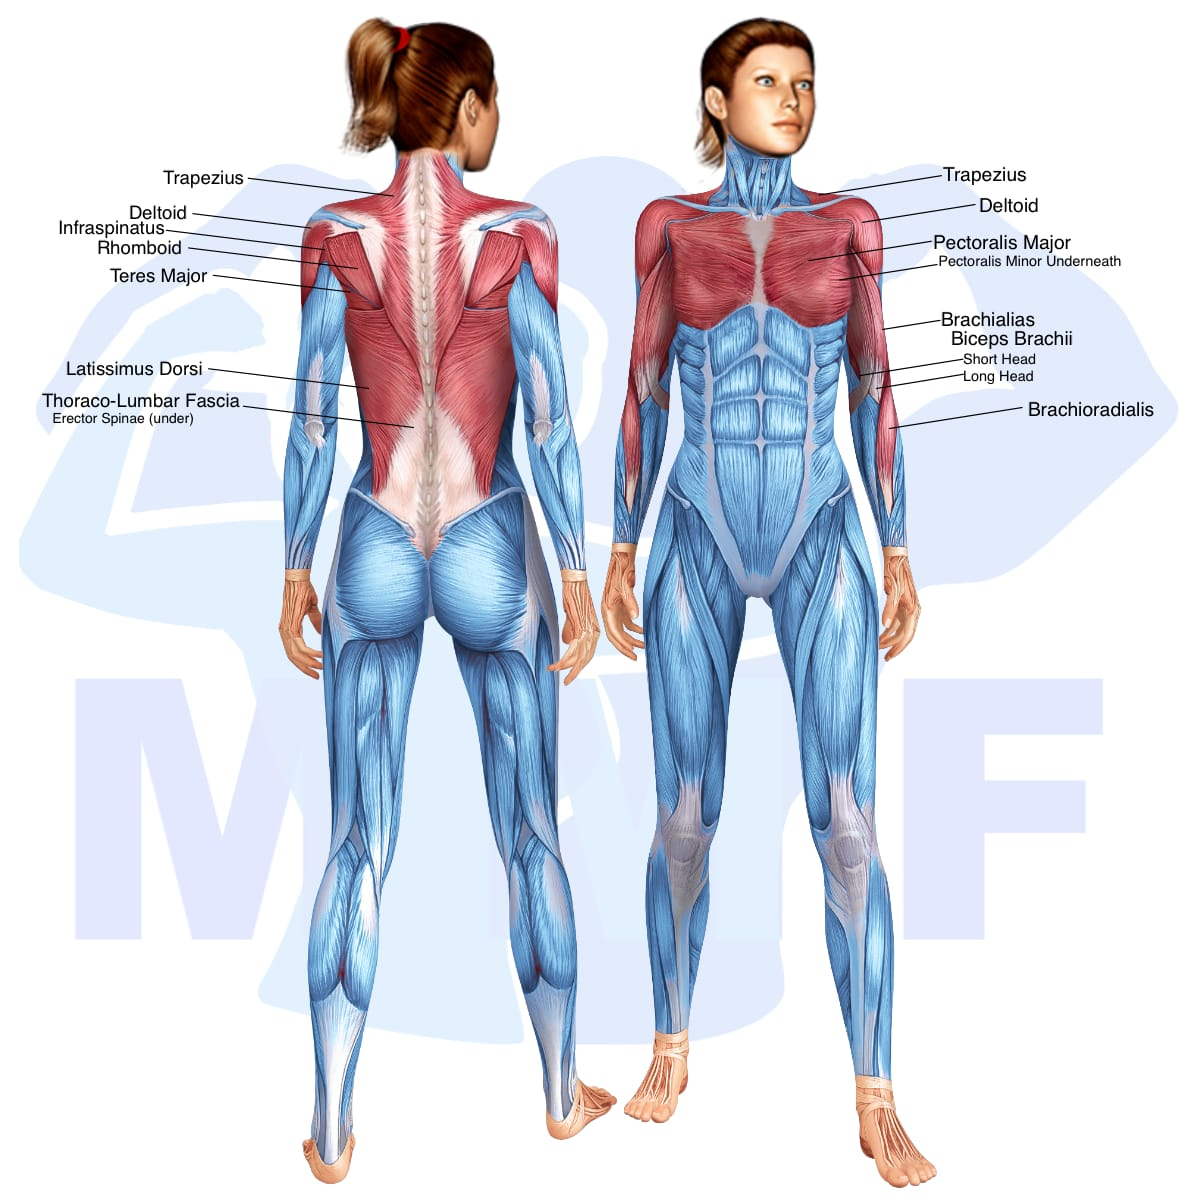 Skeletal muscle systems for a muscular woman, with muscles highlighted in red that are use during resistance band standing rows.